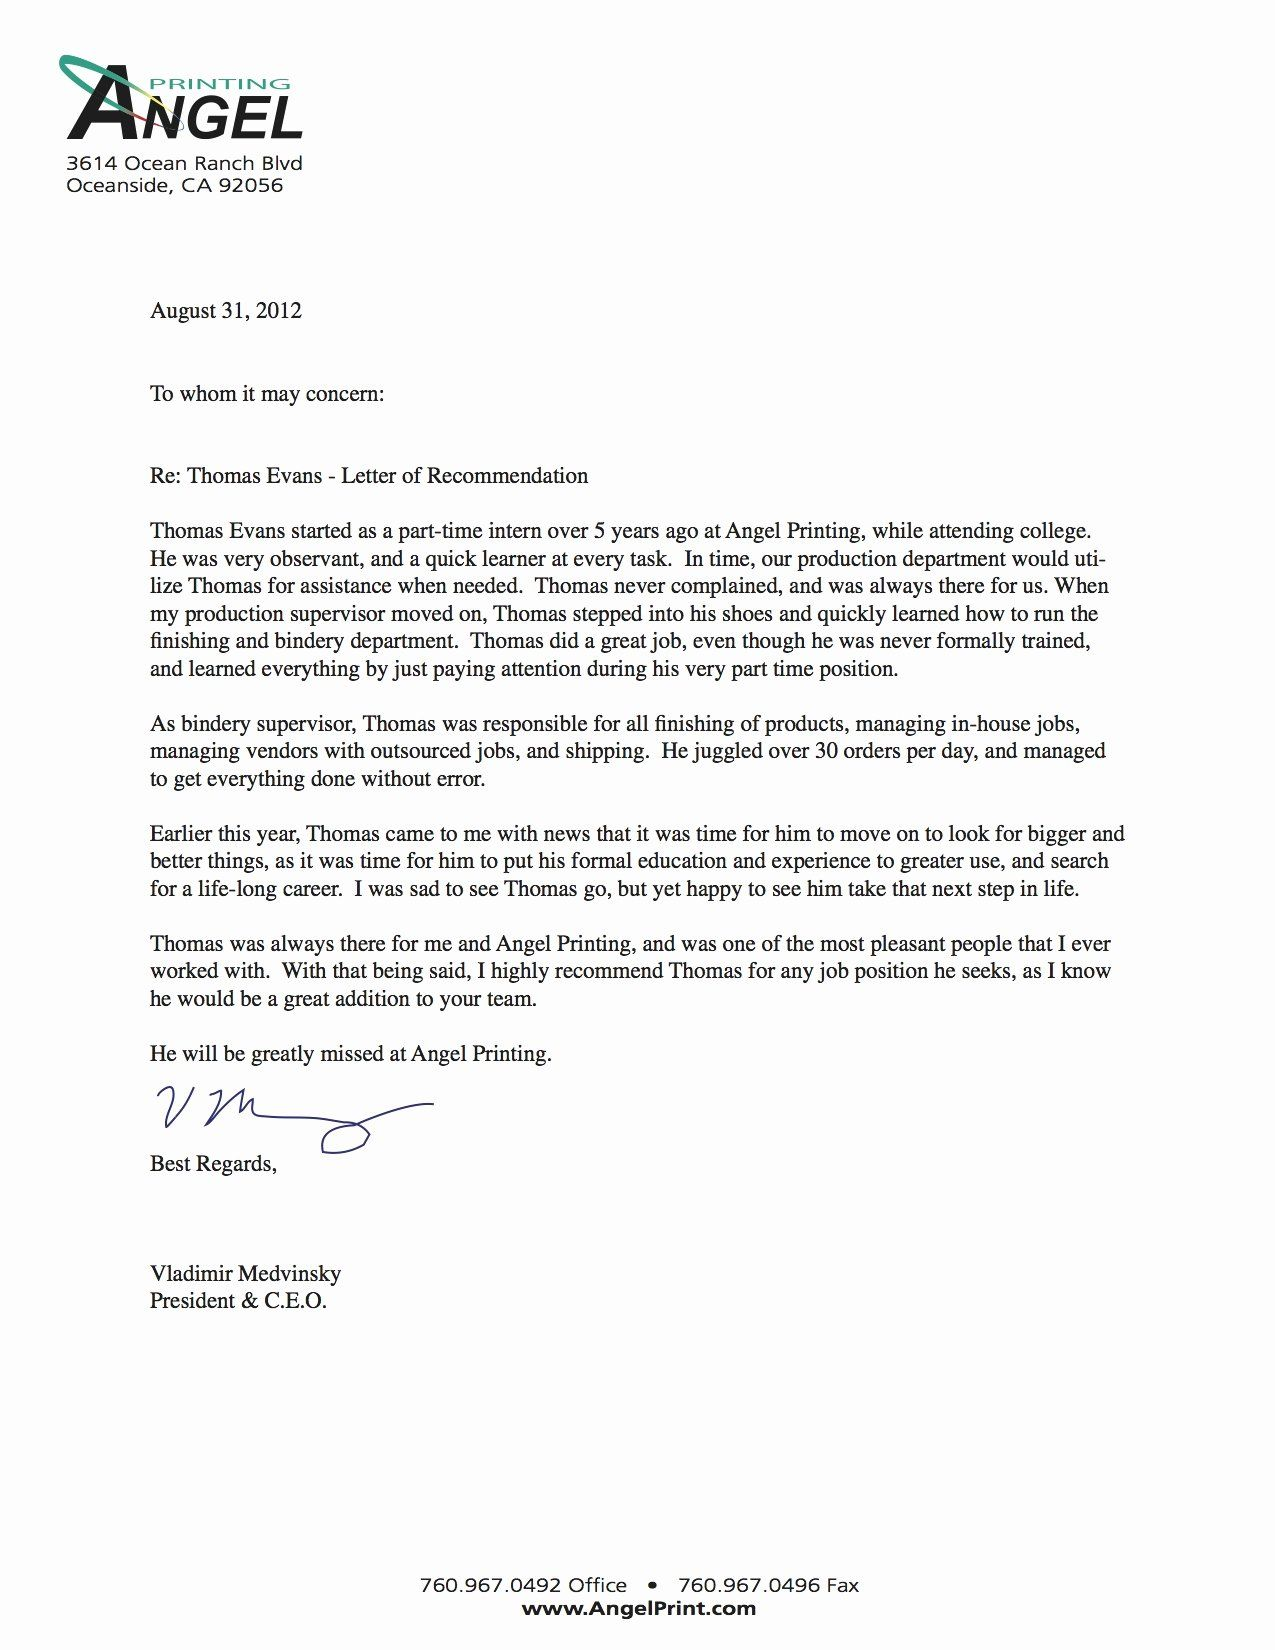 Templates For Letters Of Recommendation Inspirational Tips For Writing A Letter Of Re Mendat Letter Of Recommendation Letter Of Recommendation Format Lettering